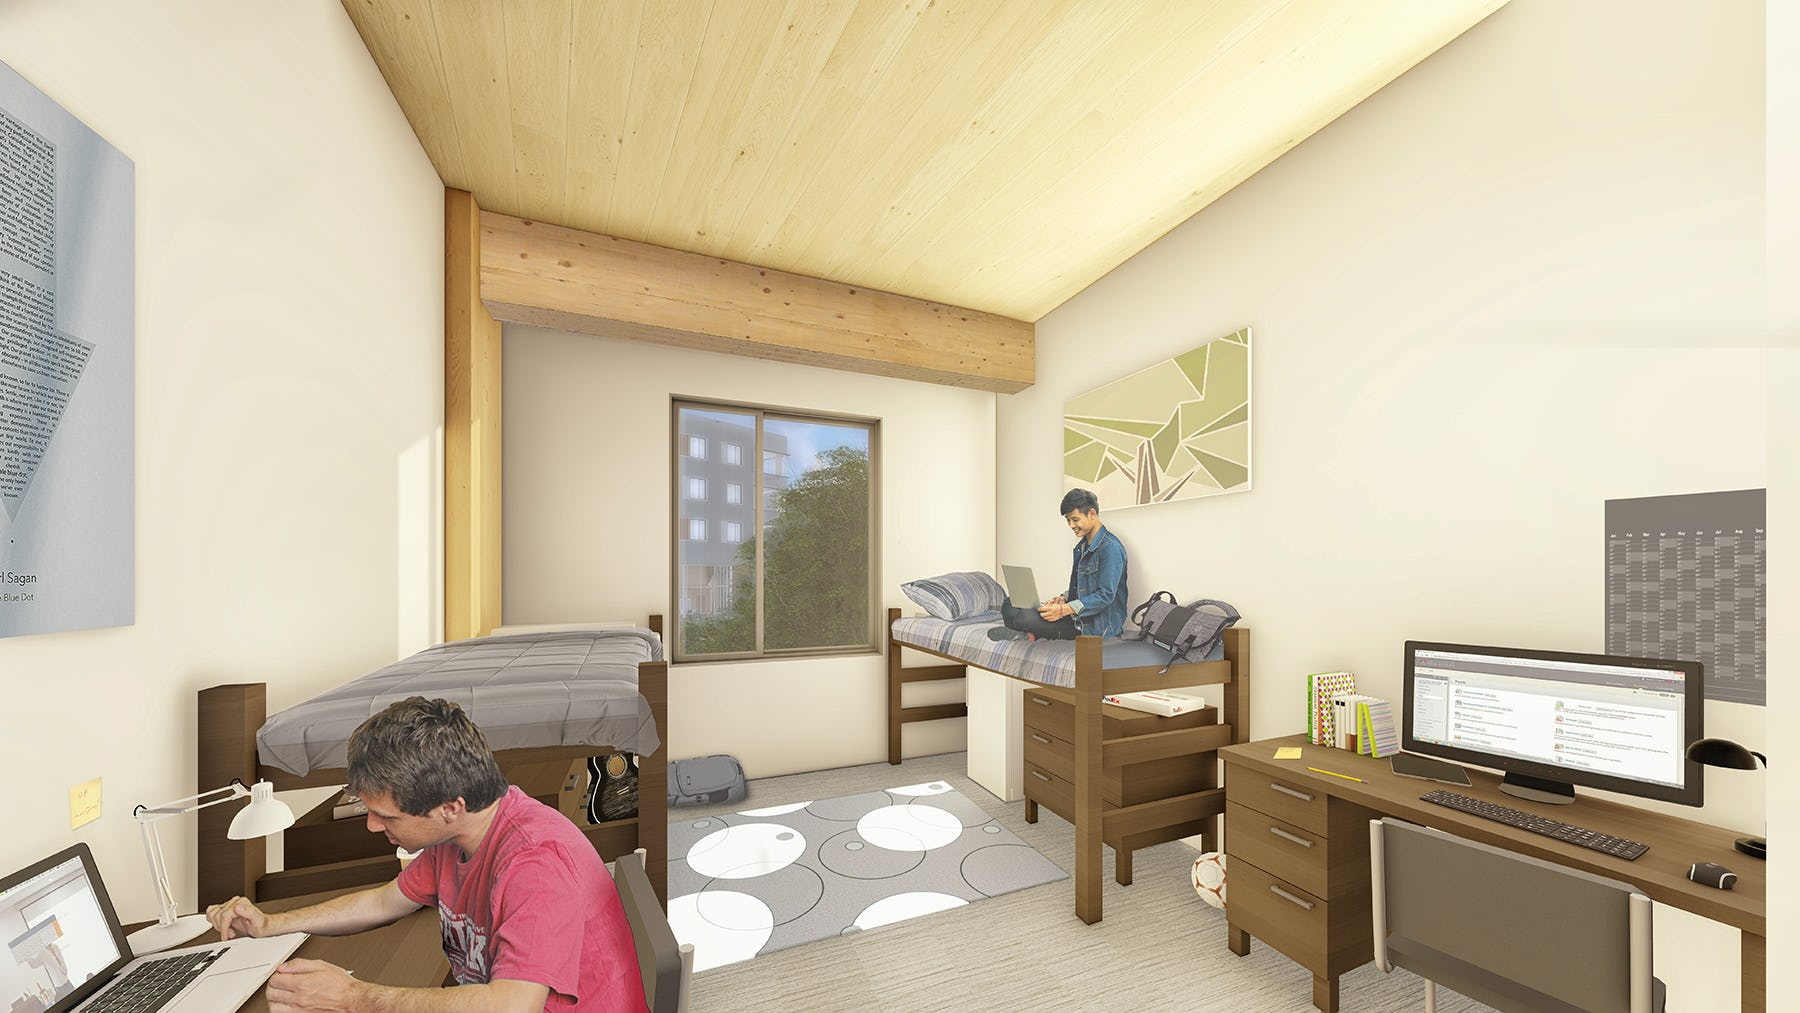 Uasdh rendering semi suite low res